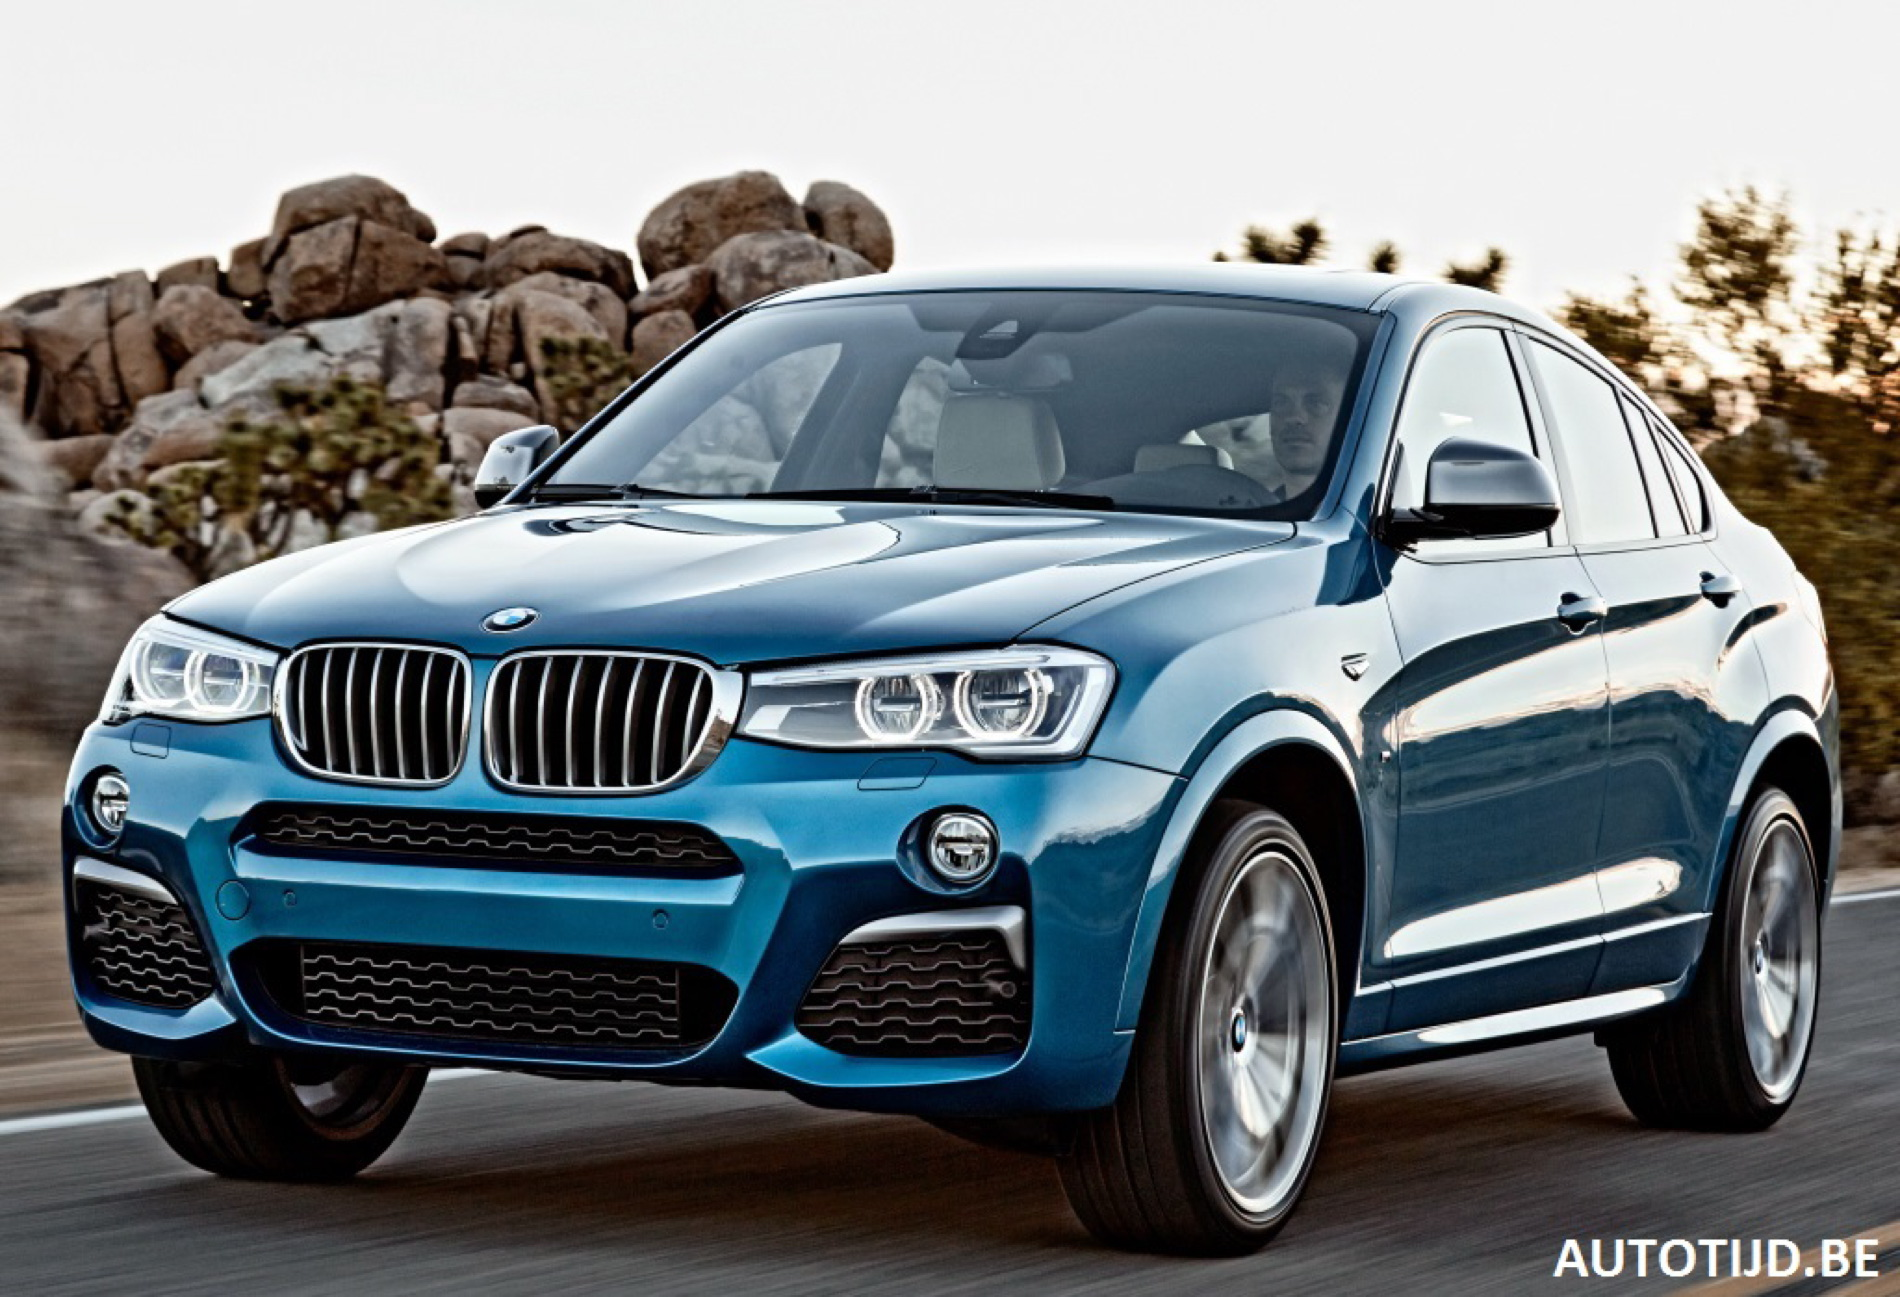 2017 Bmw X4 M40i Leaked Photo Gallery